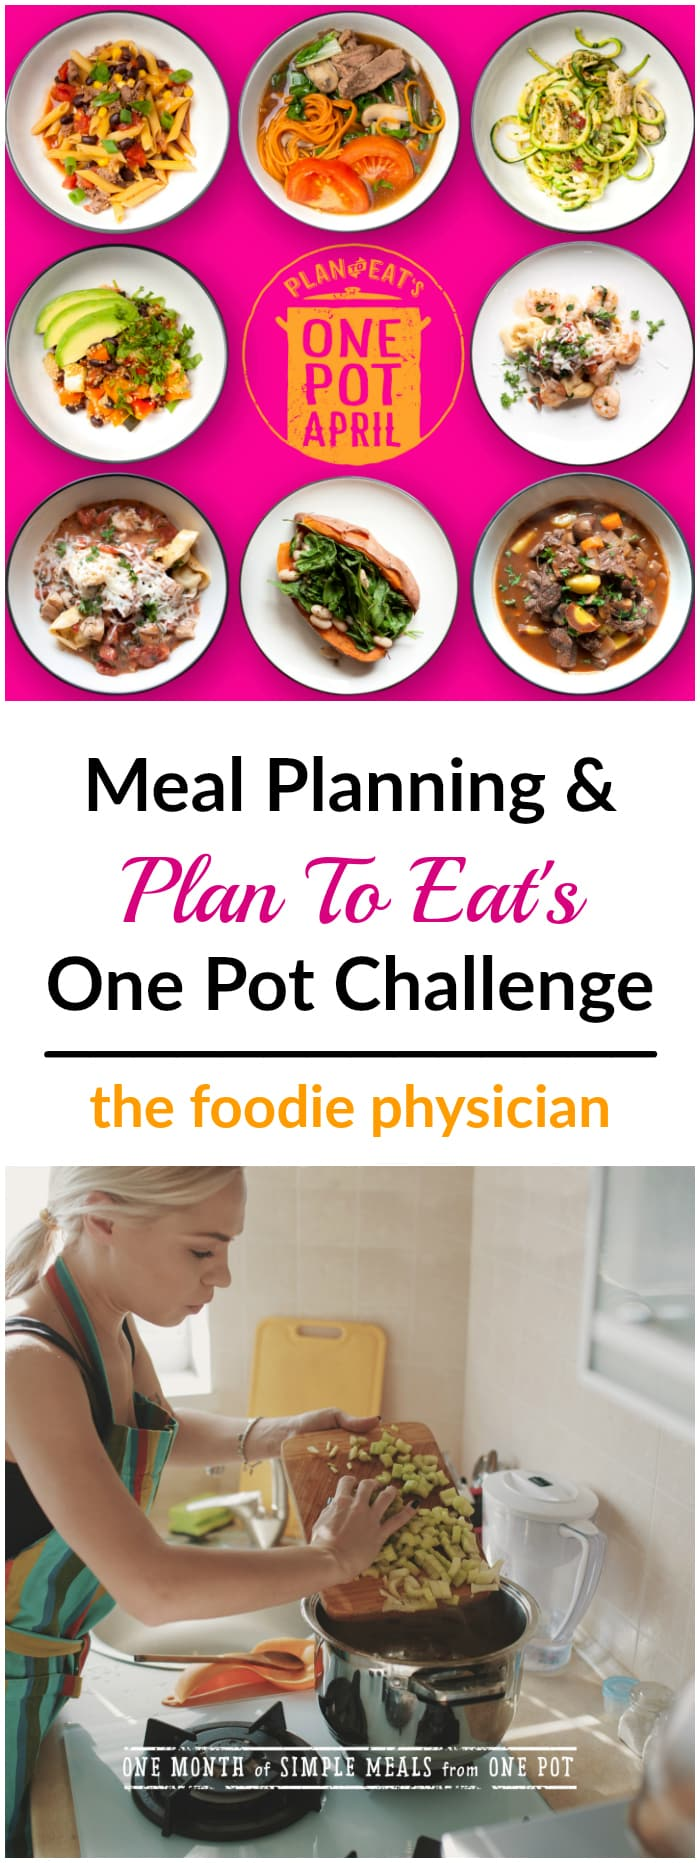 Meal Planning 101 & Plan to Eat's One Pot April Challenge | @foodiephysician